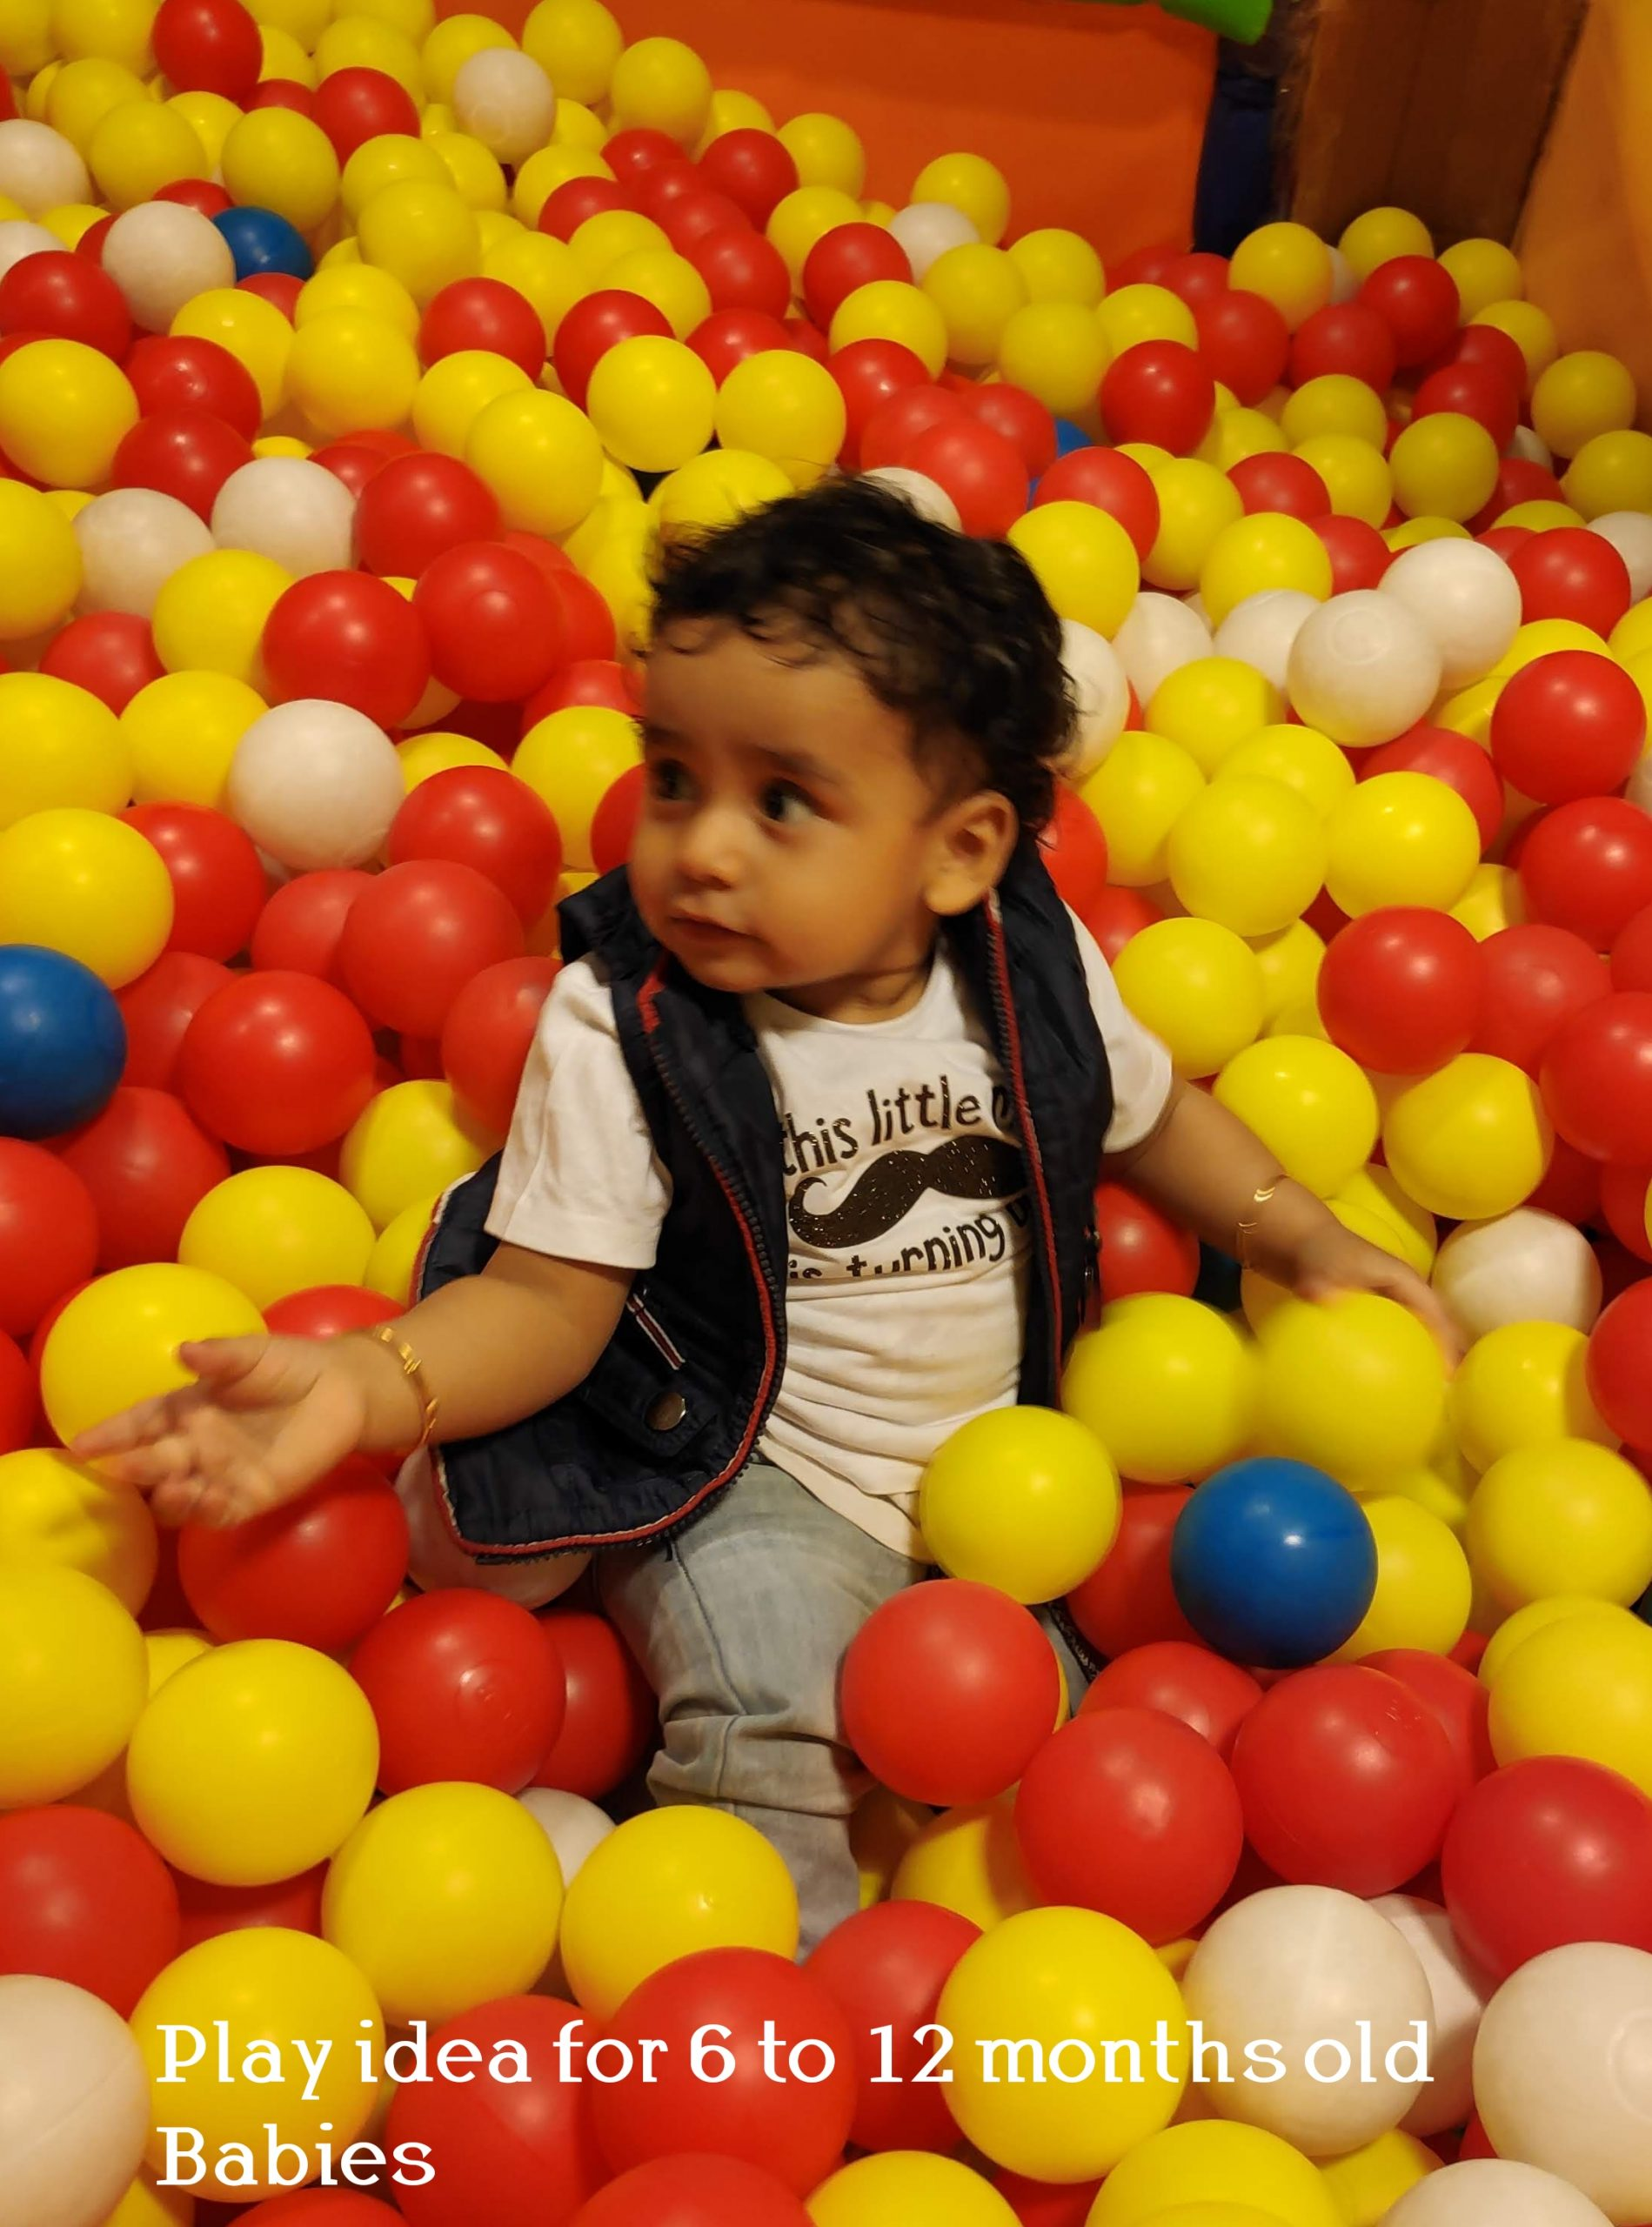 Play idea for 6 to 12 months old kids –  Guest Post by Ricta Tripathi